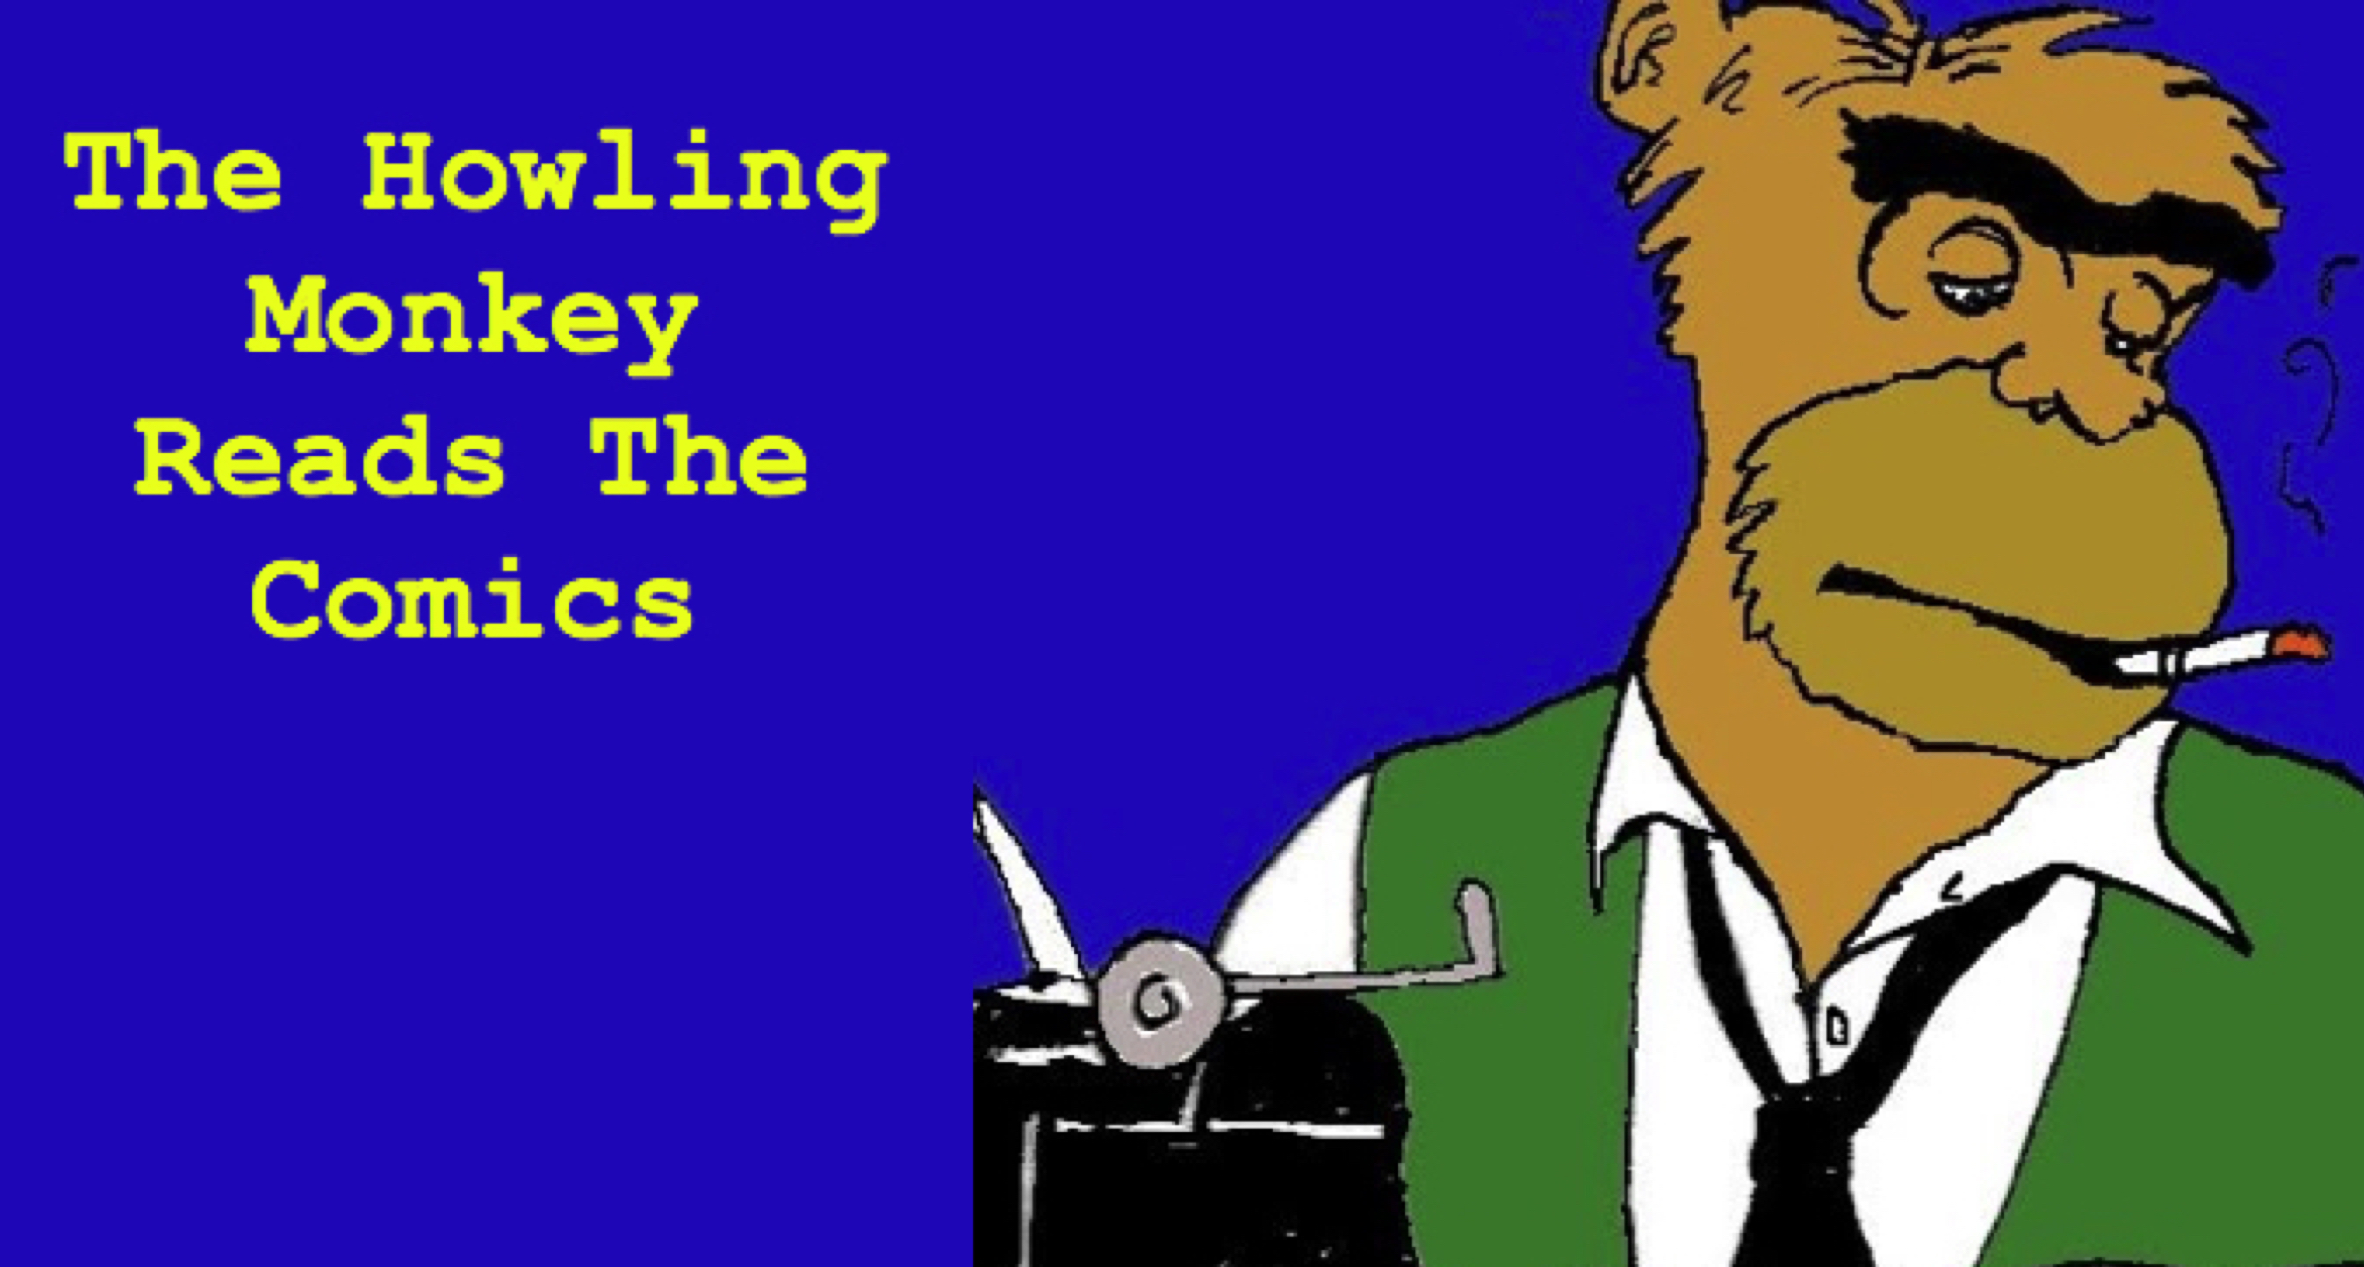 The Howling Monkey Reads the Comics - We explain why the comics are funny!Subscribe in iTunes!Listen on Stitcher!